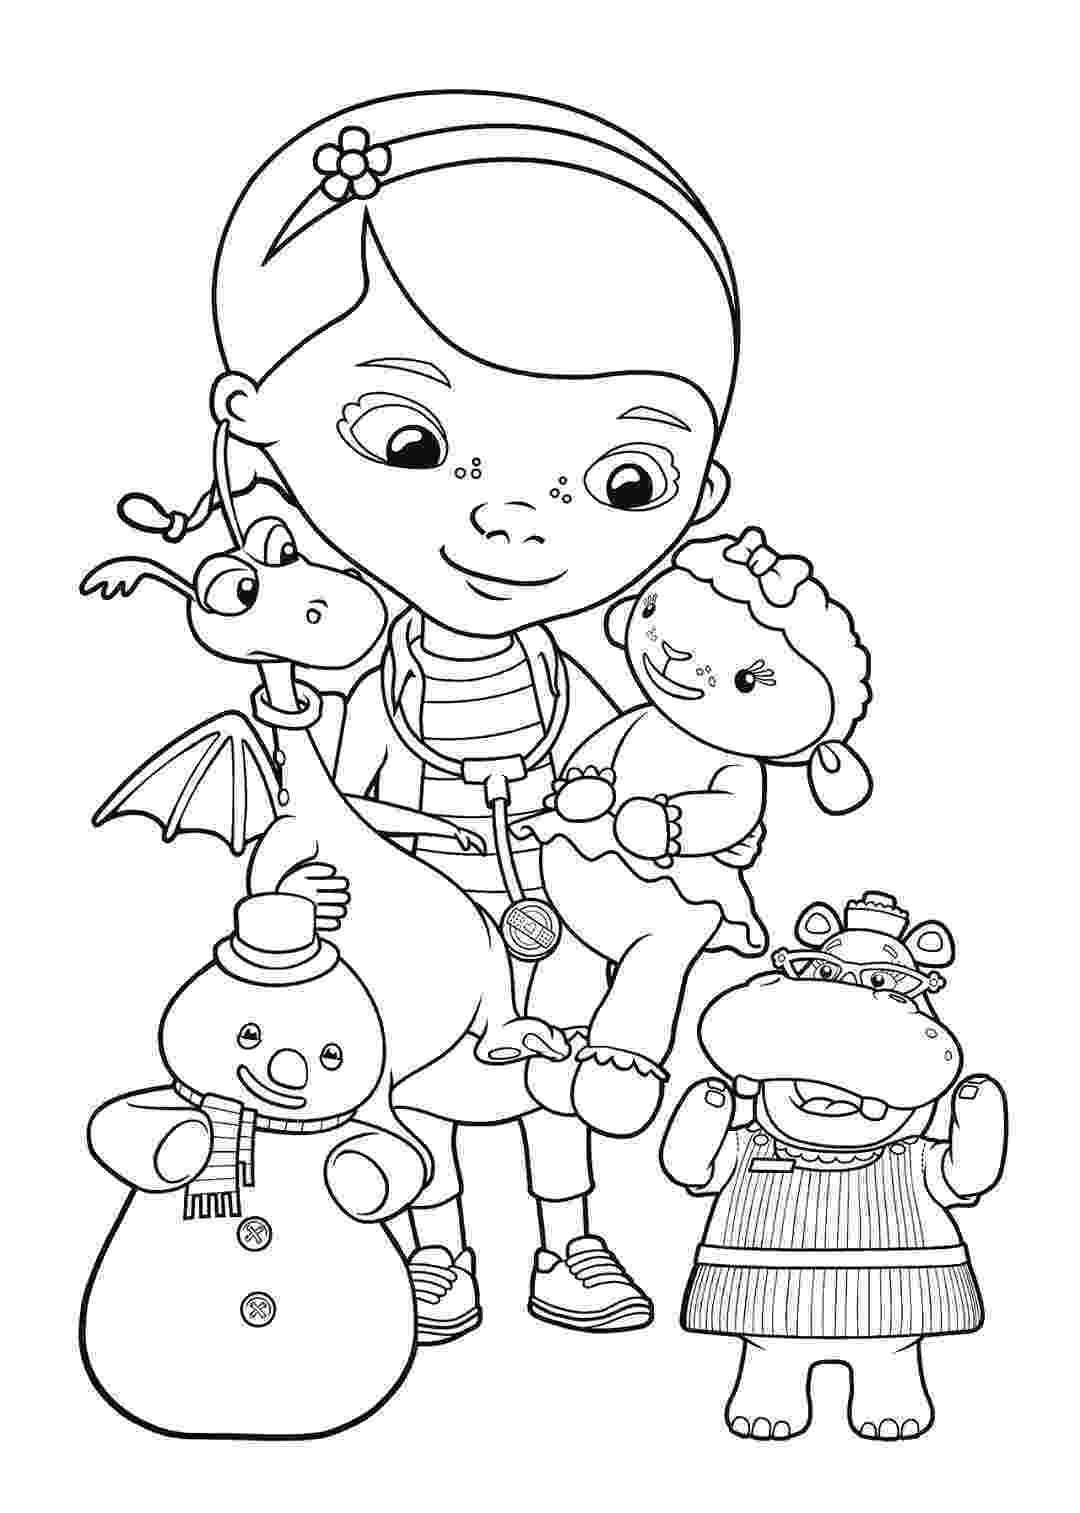 free coloring pages printable shimmer and shine coloring pages to download and print for pages free coloring printable